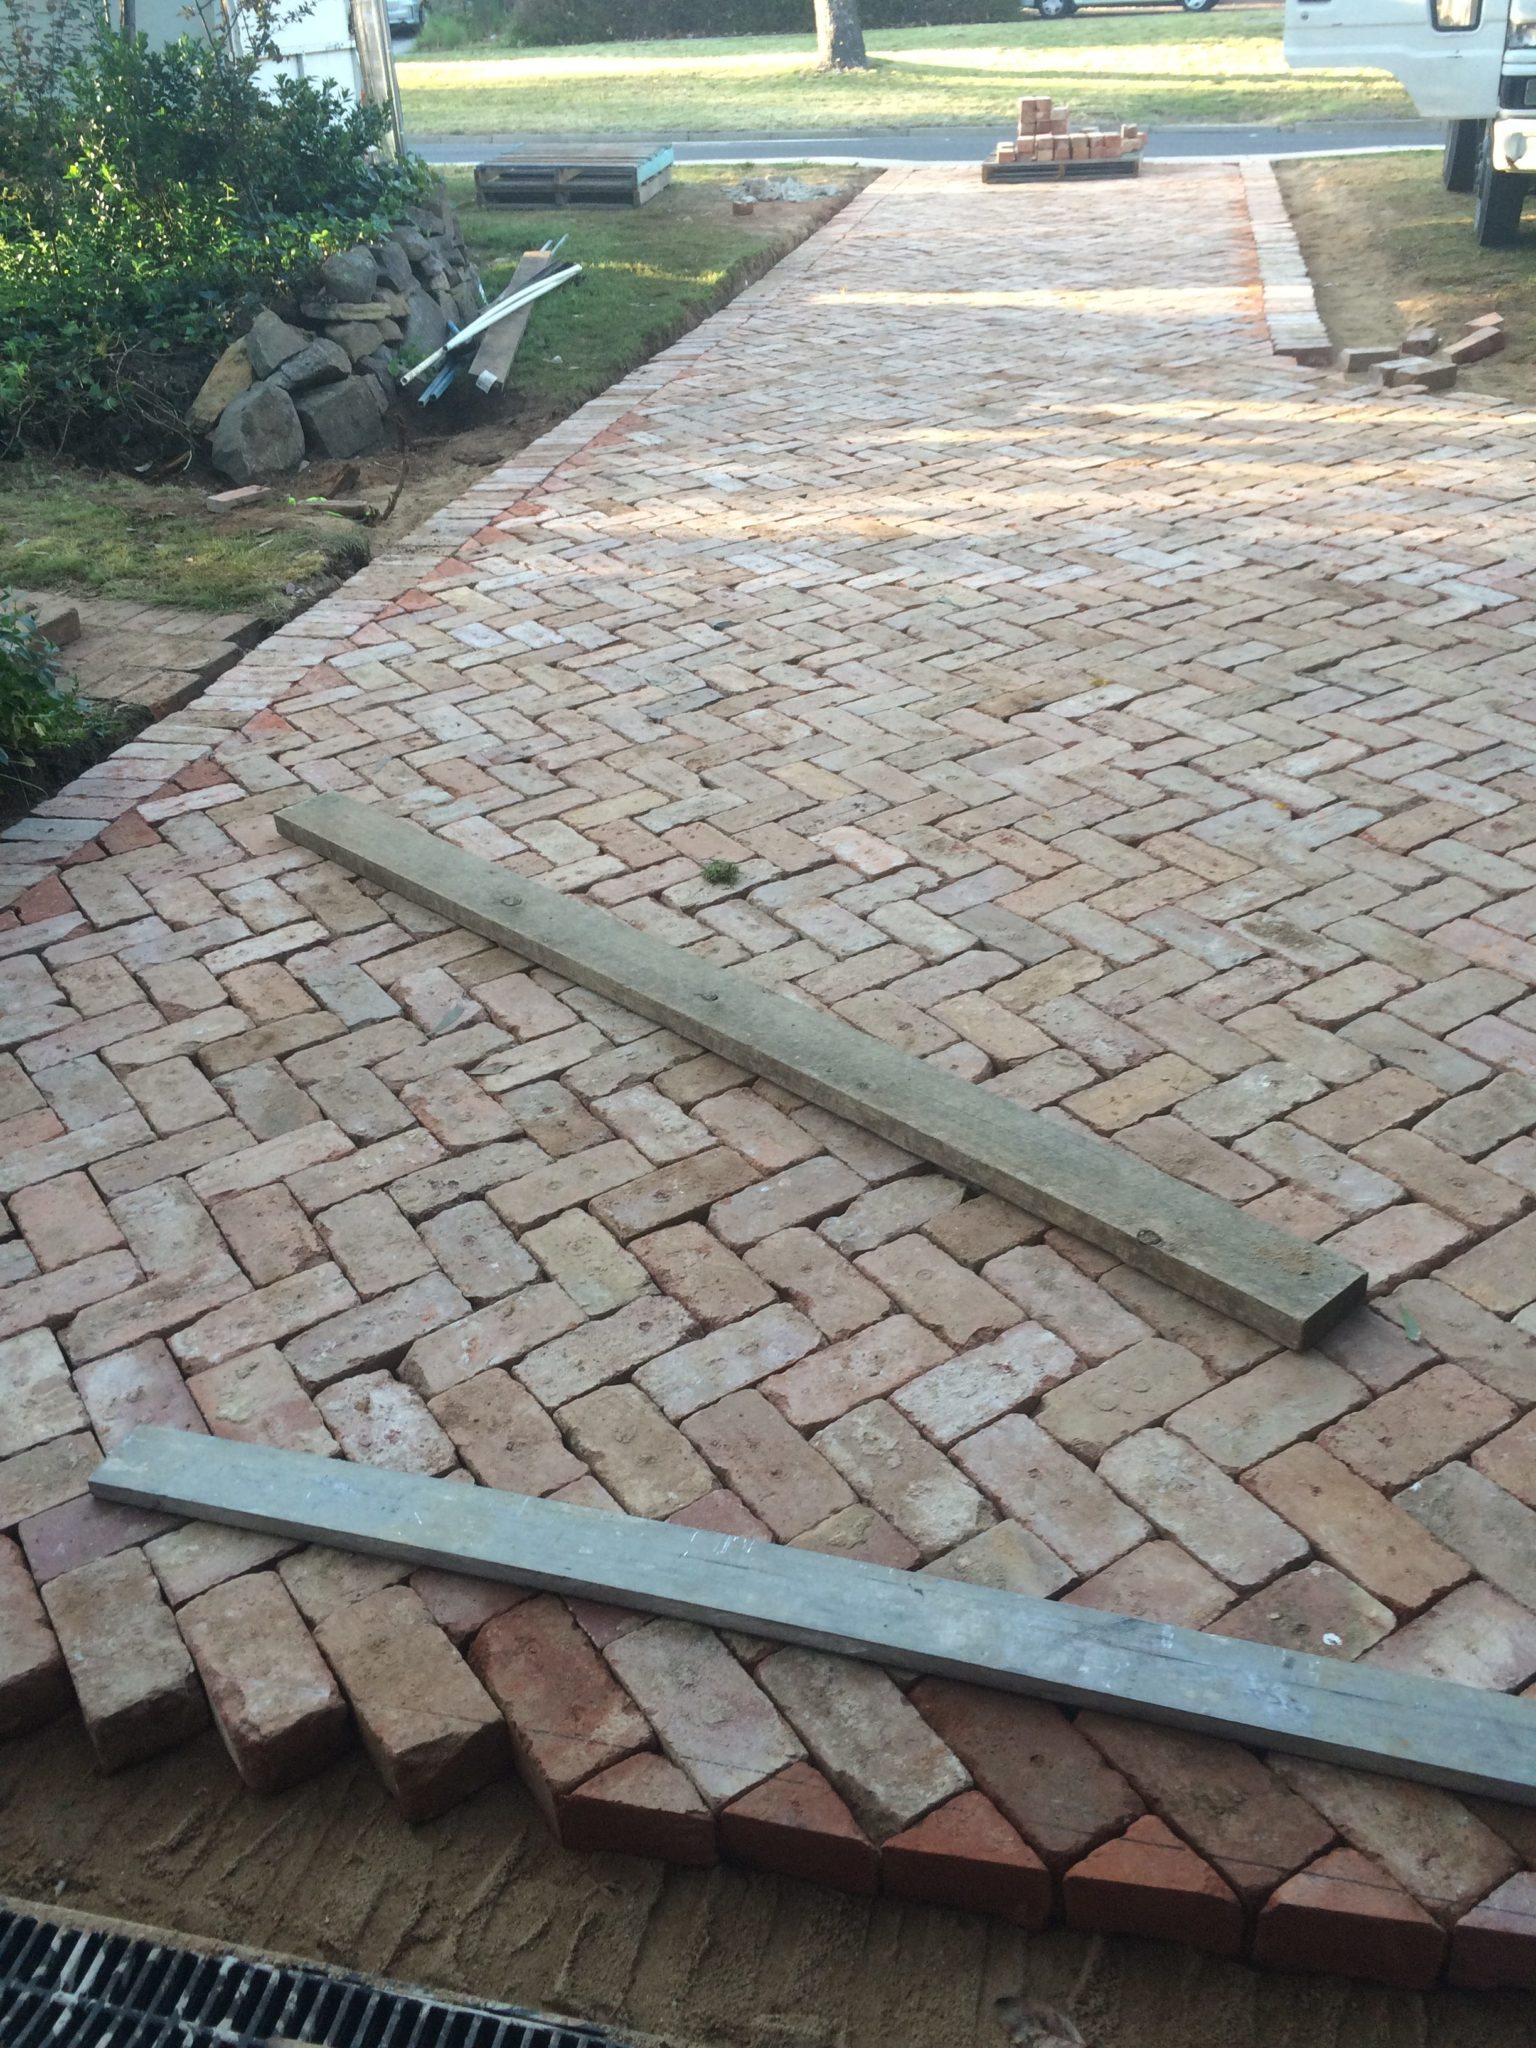 Driveway Construction | Design and Construction of Driveways